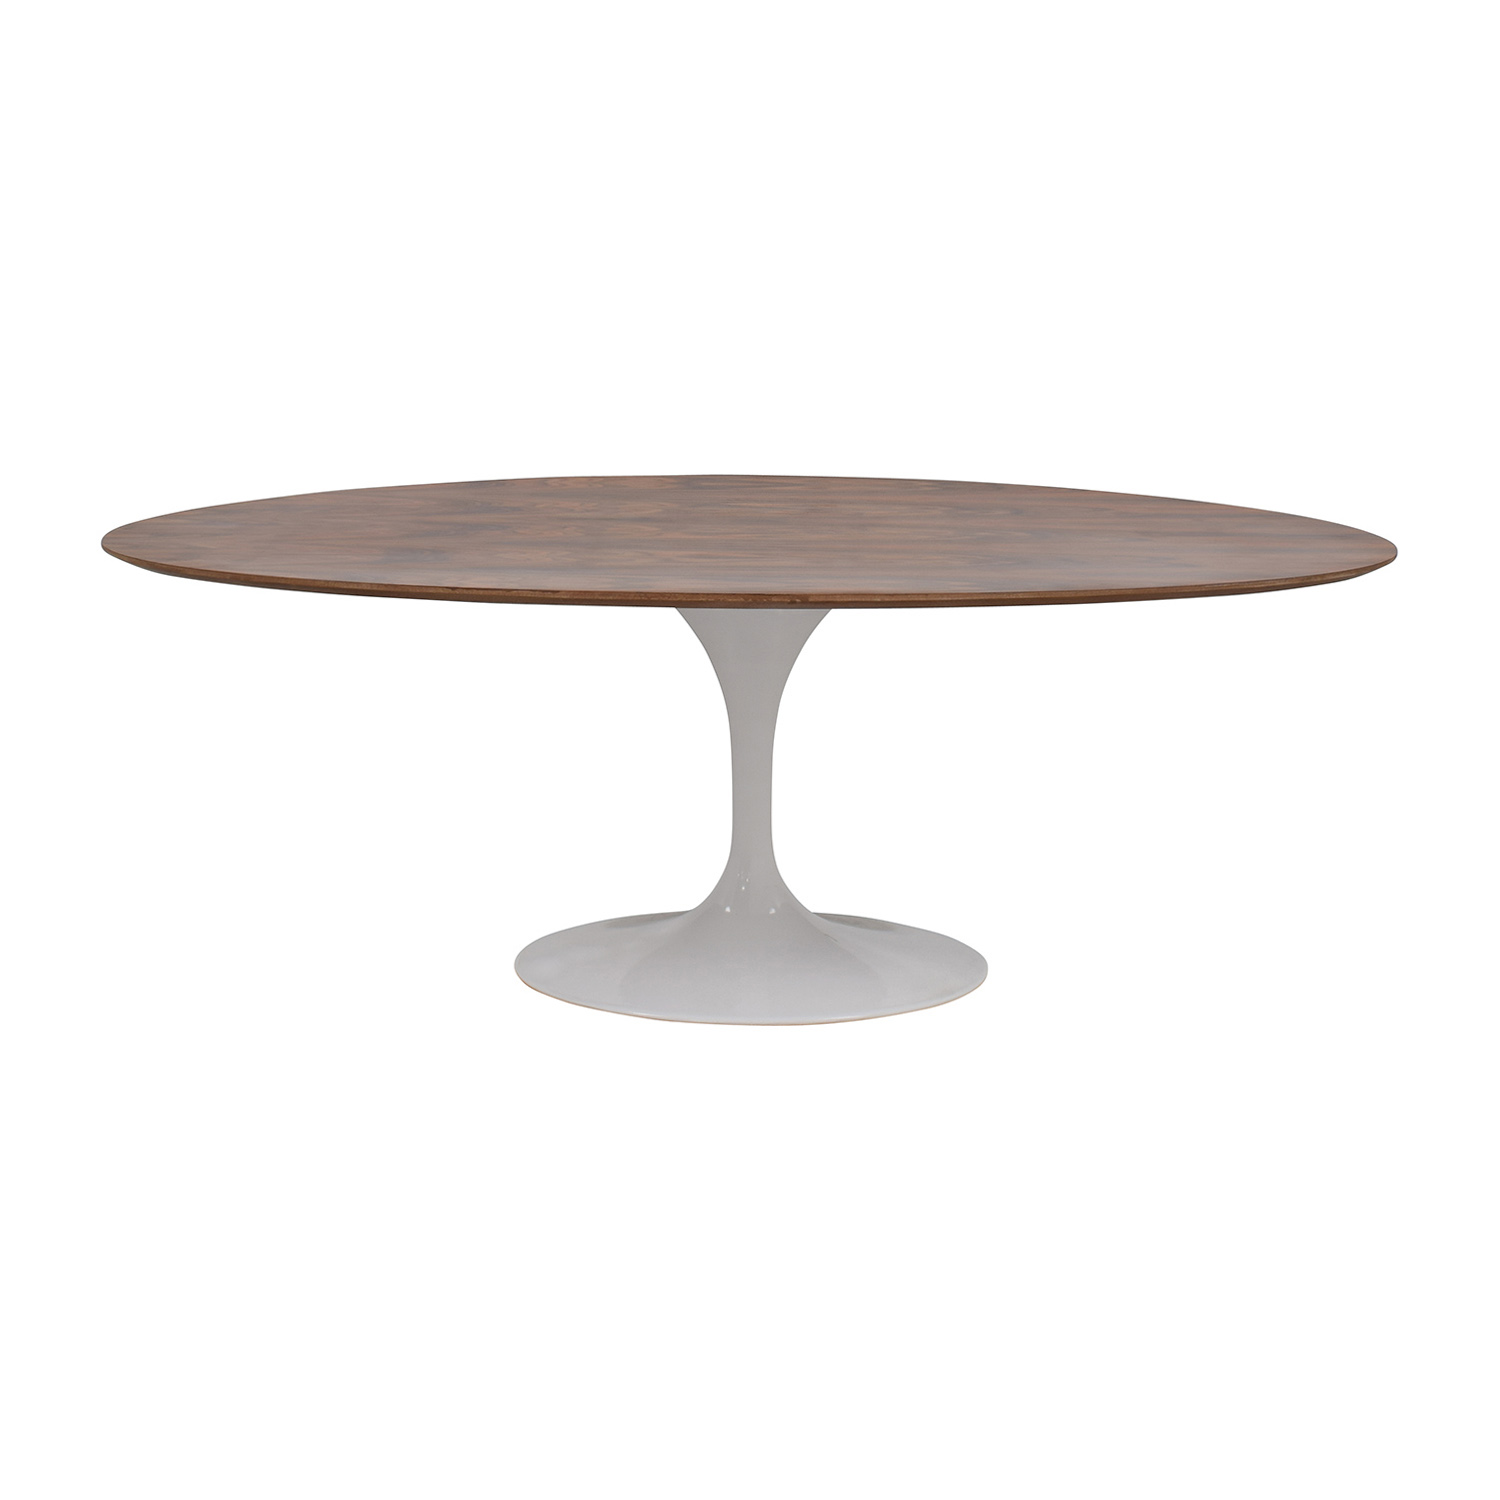 InMod Saarinen Oval Pedestal Dining table InMod